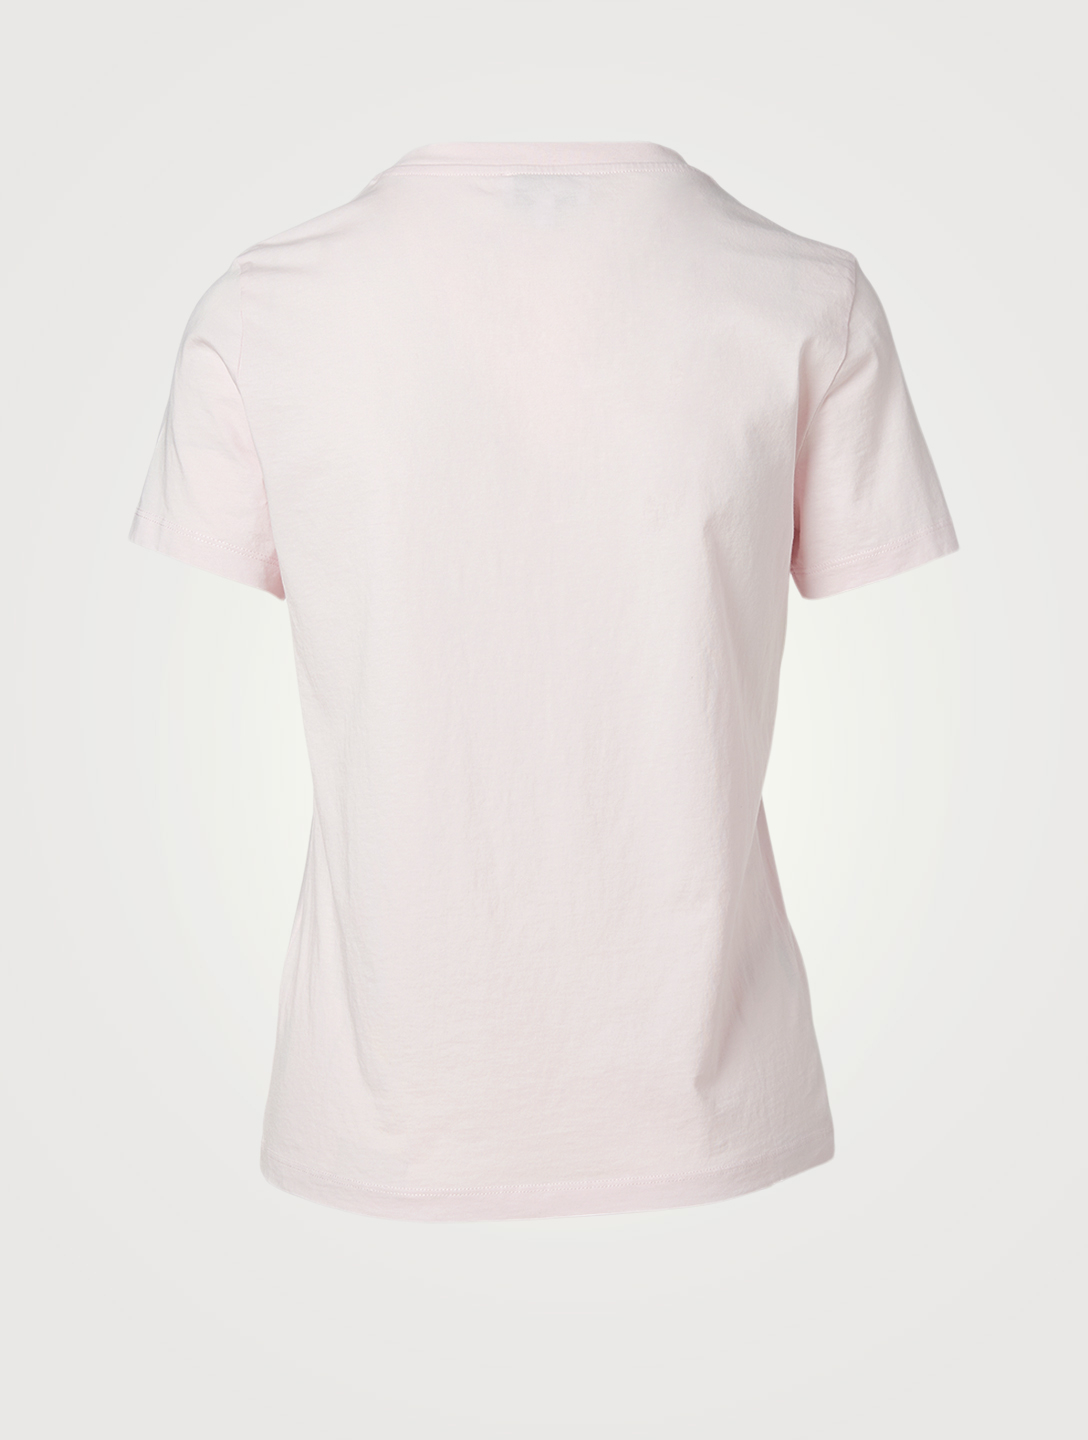 KENZO Classic Tiger Cotton T-Shirt Women's Pink